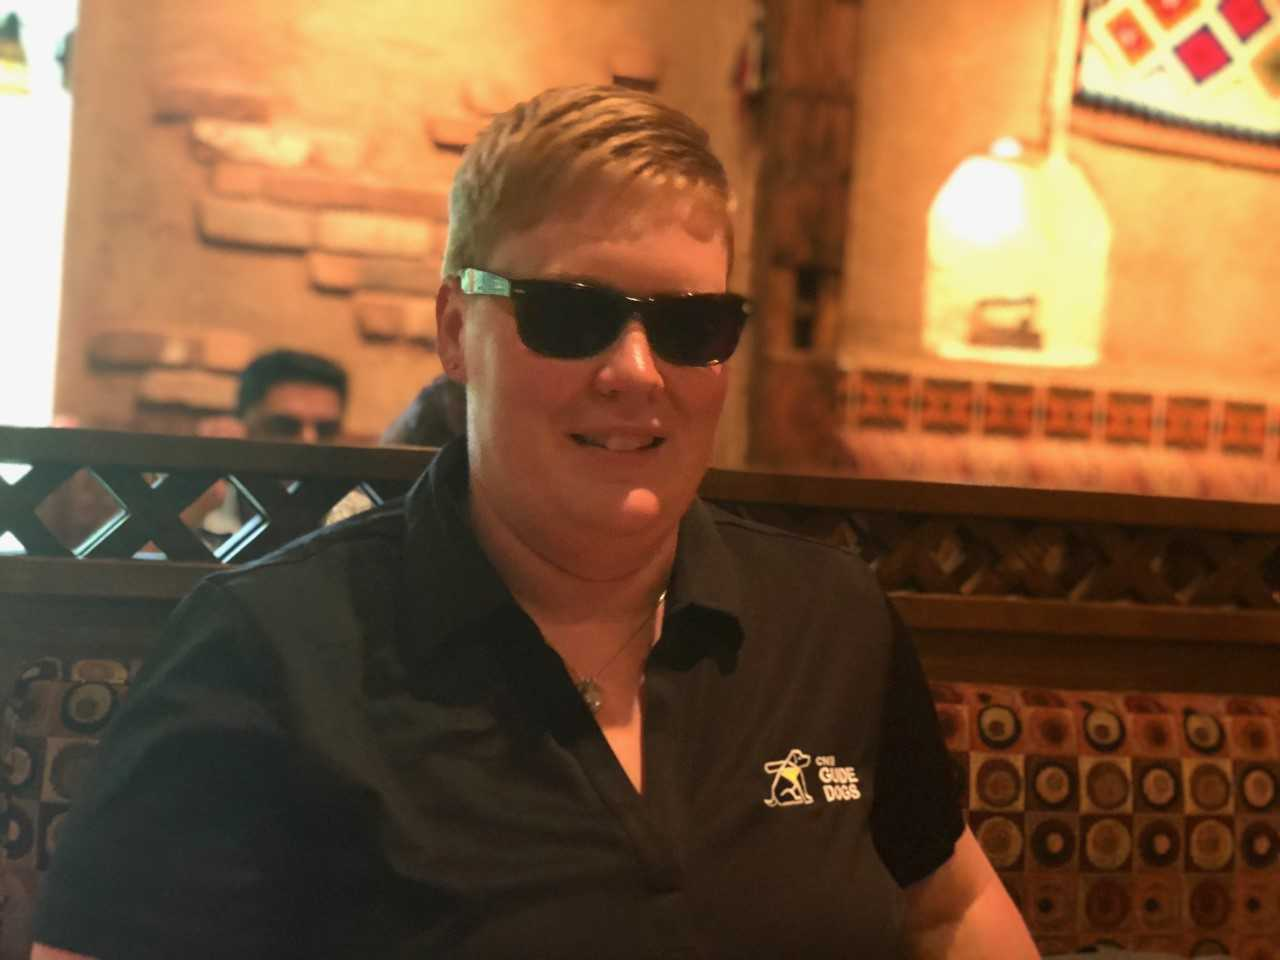 Ashley Nemeth smiles while sitting in a restaurant booth and wearing sunglasses.